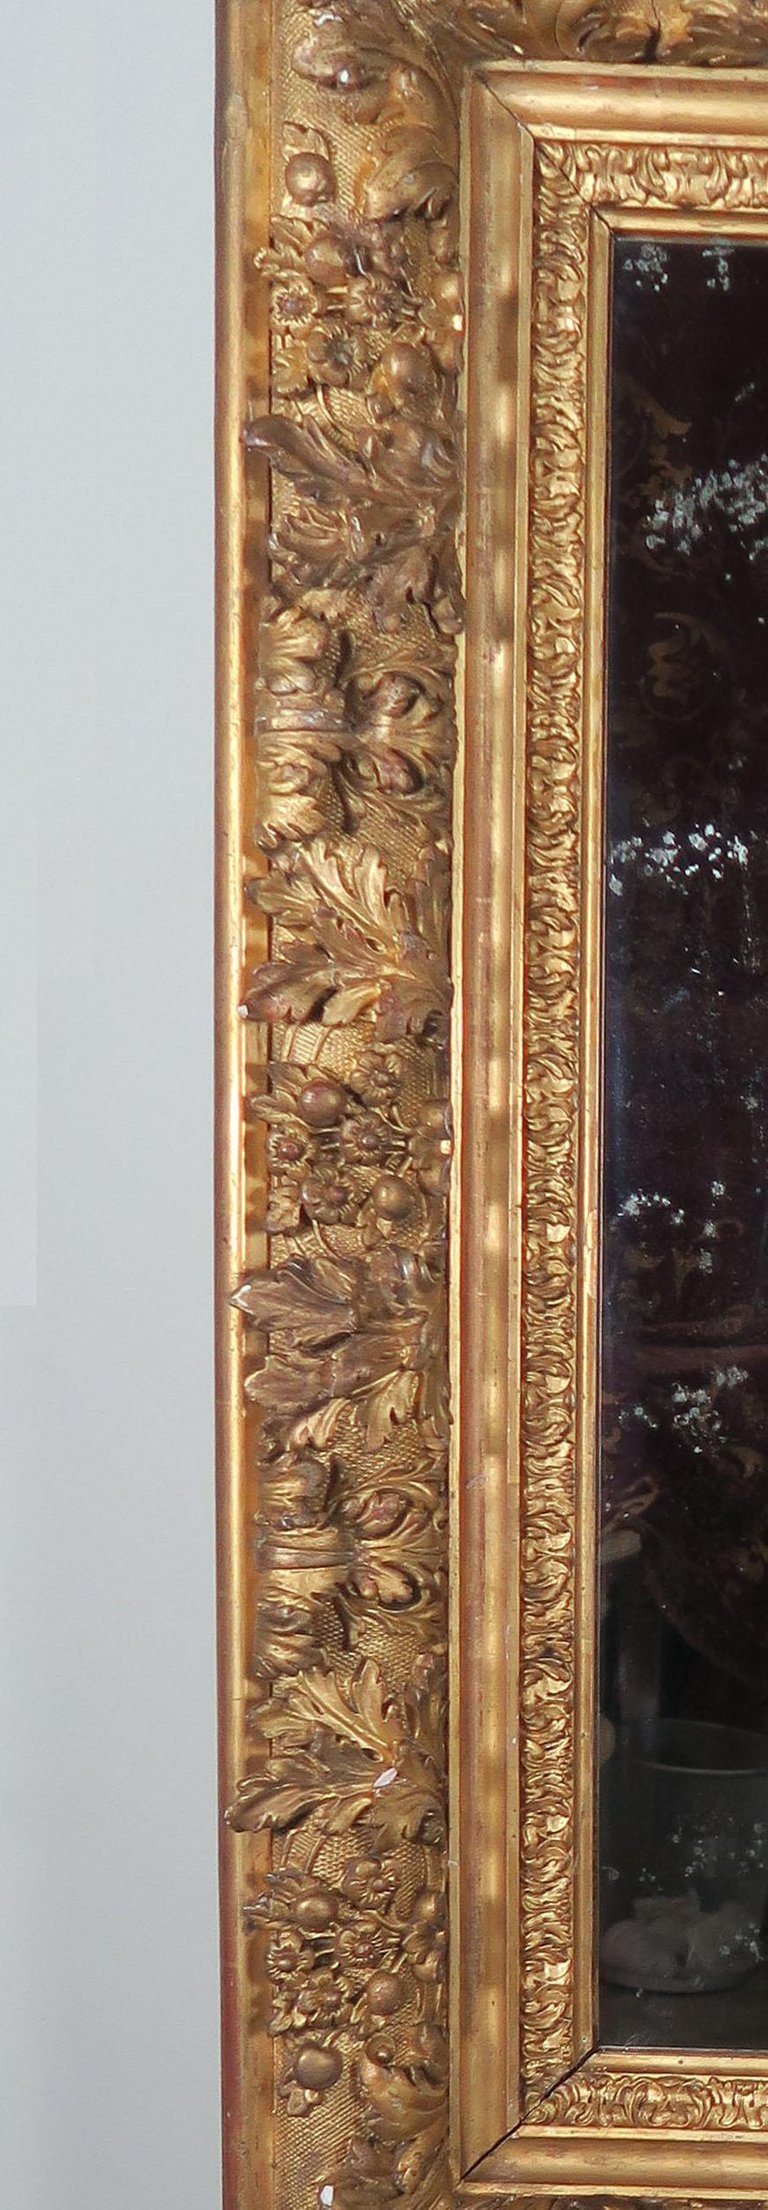 18th Century French Carved Louis XIV Style Mirror4